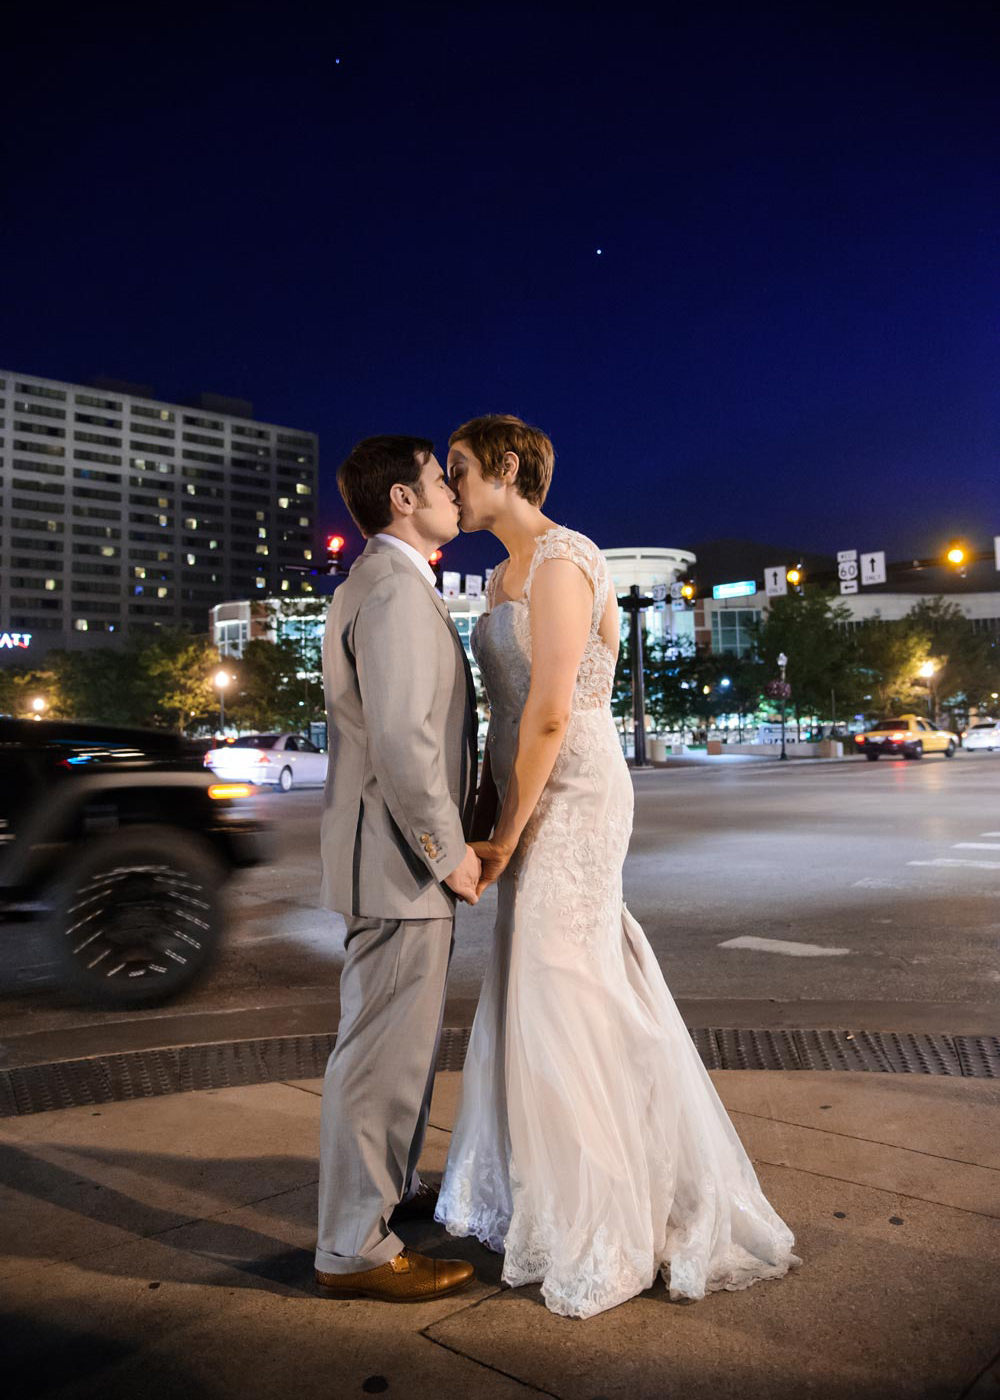 wedding_photographer_lexington_ky_studio_walz188.jpg